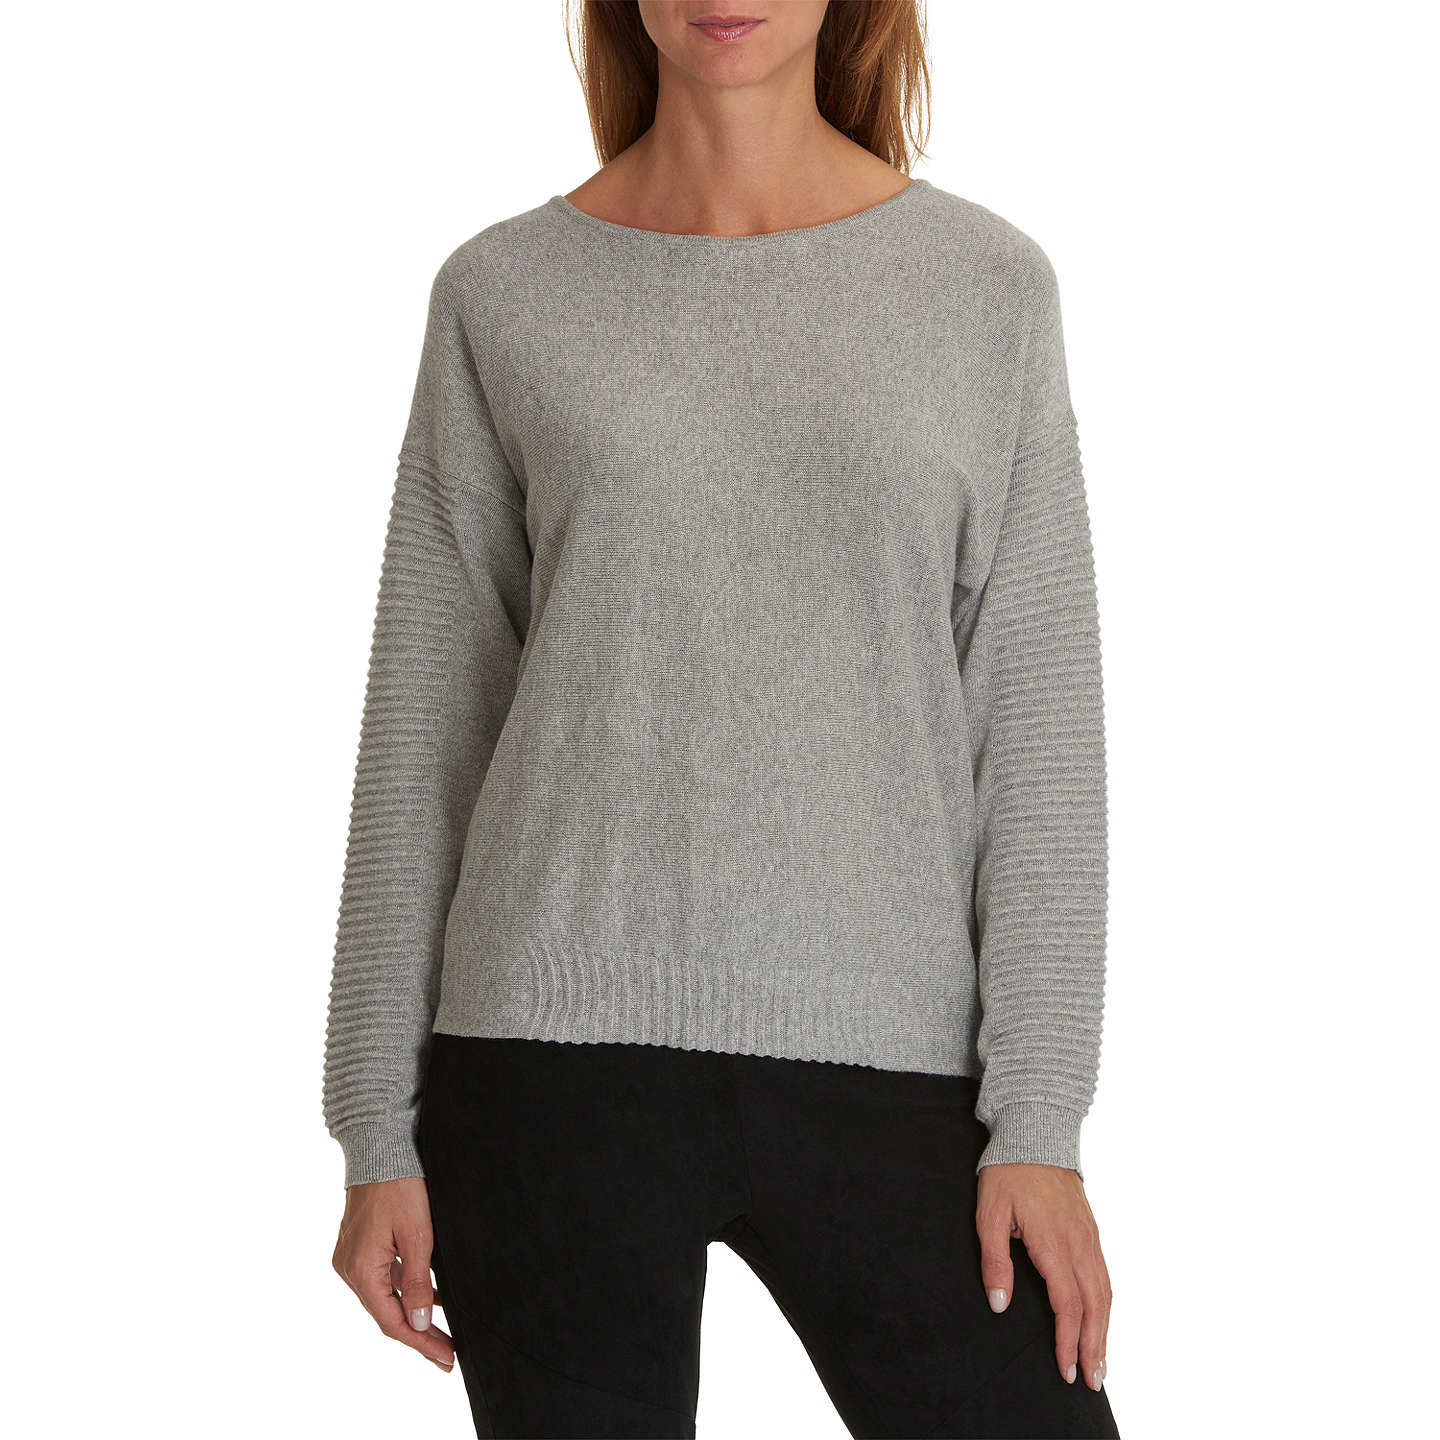 BuyBetty & Co Fine Knit Jumper, Light Grey Melange, 14 Online at johnlewis.com